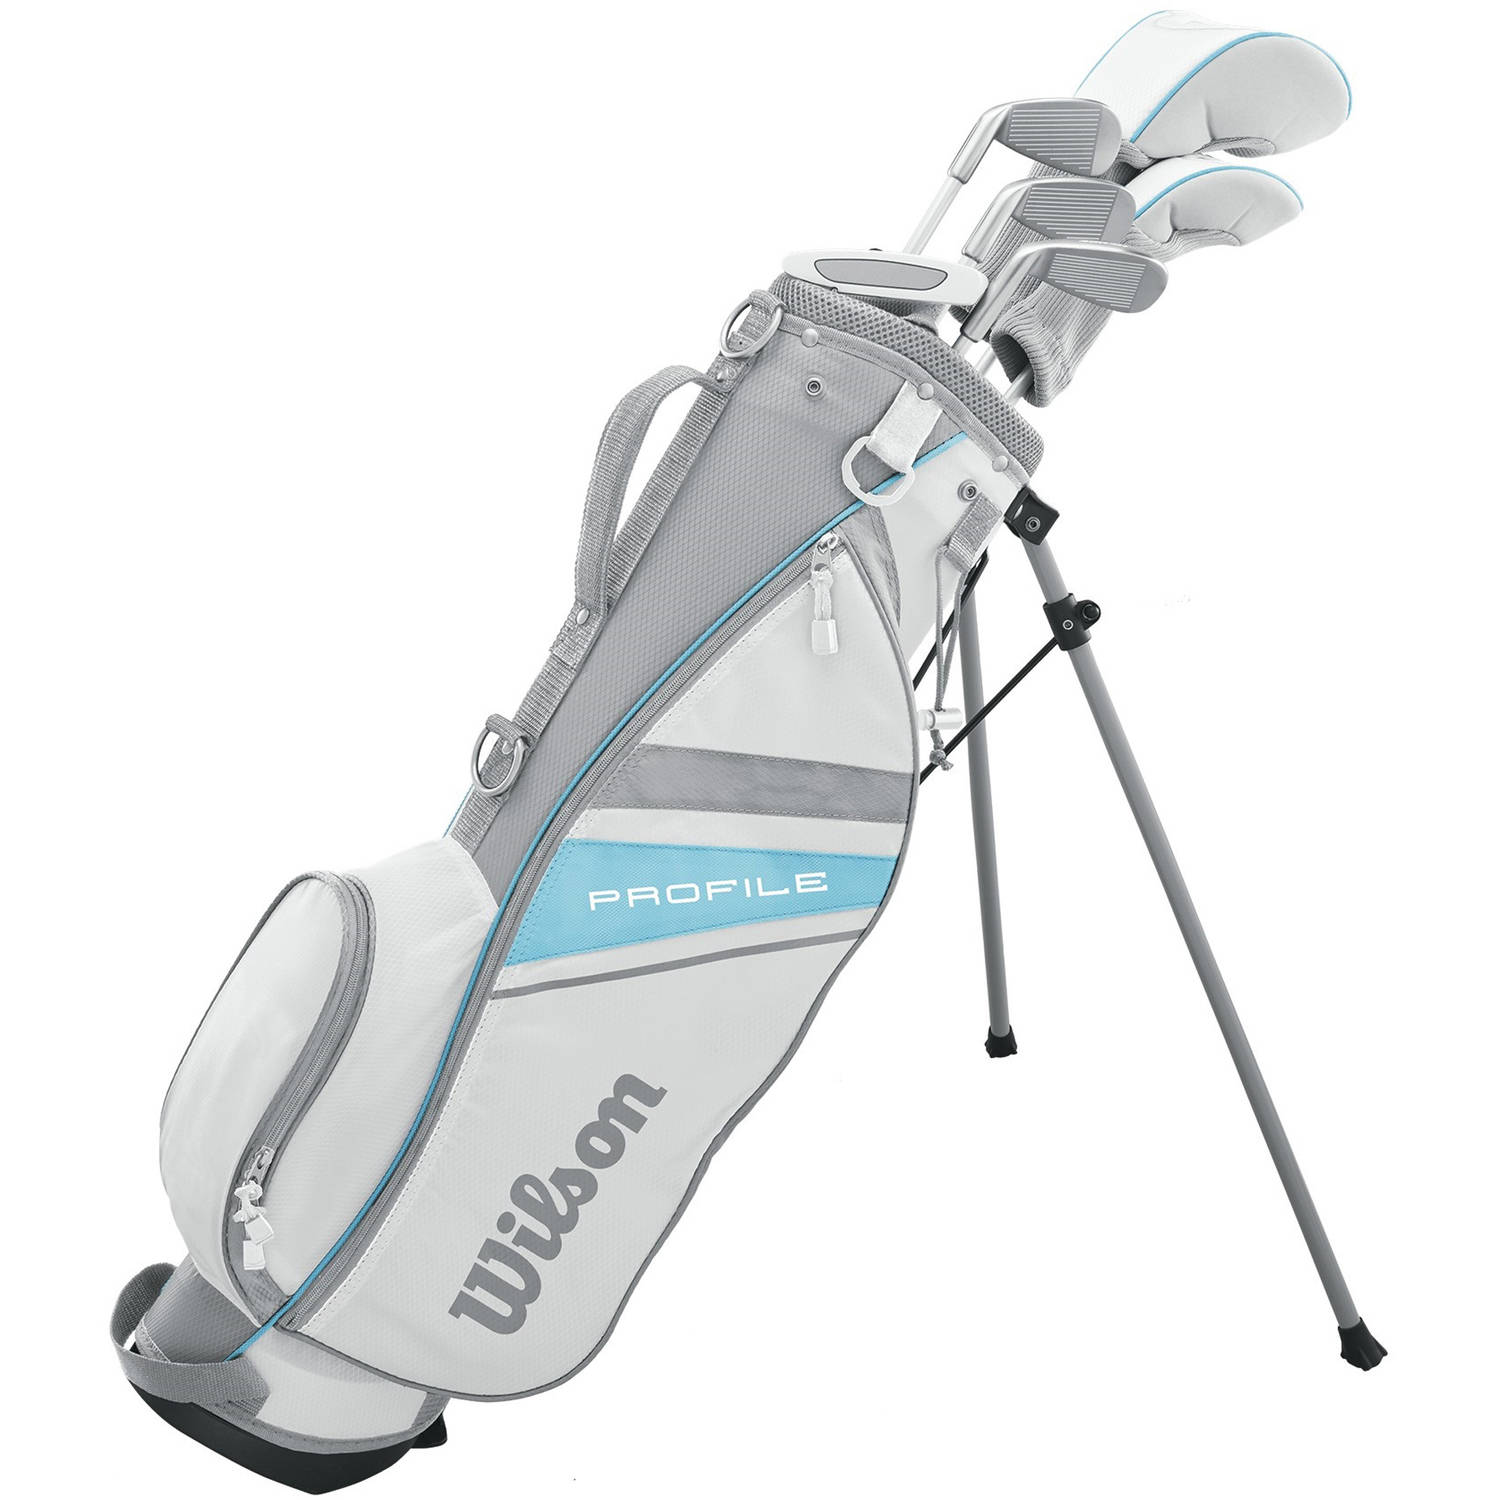 Wilson Profile JR Girls Package Golf Set, Large, Left Handed, Large, For Ages 10-13 by Wilson Sporting Goods Co.